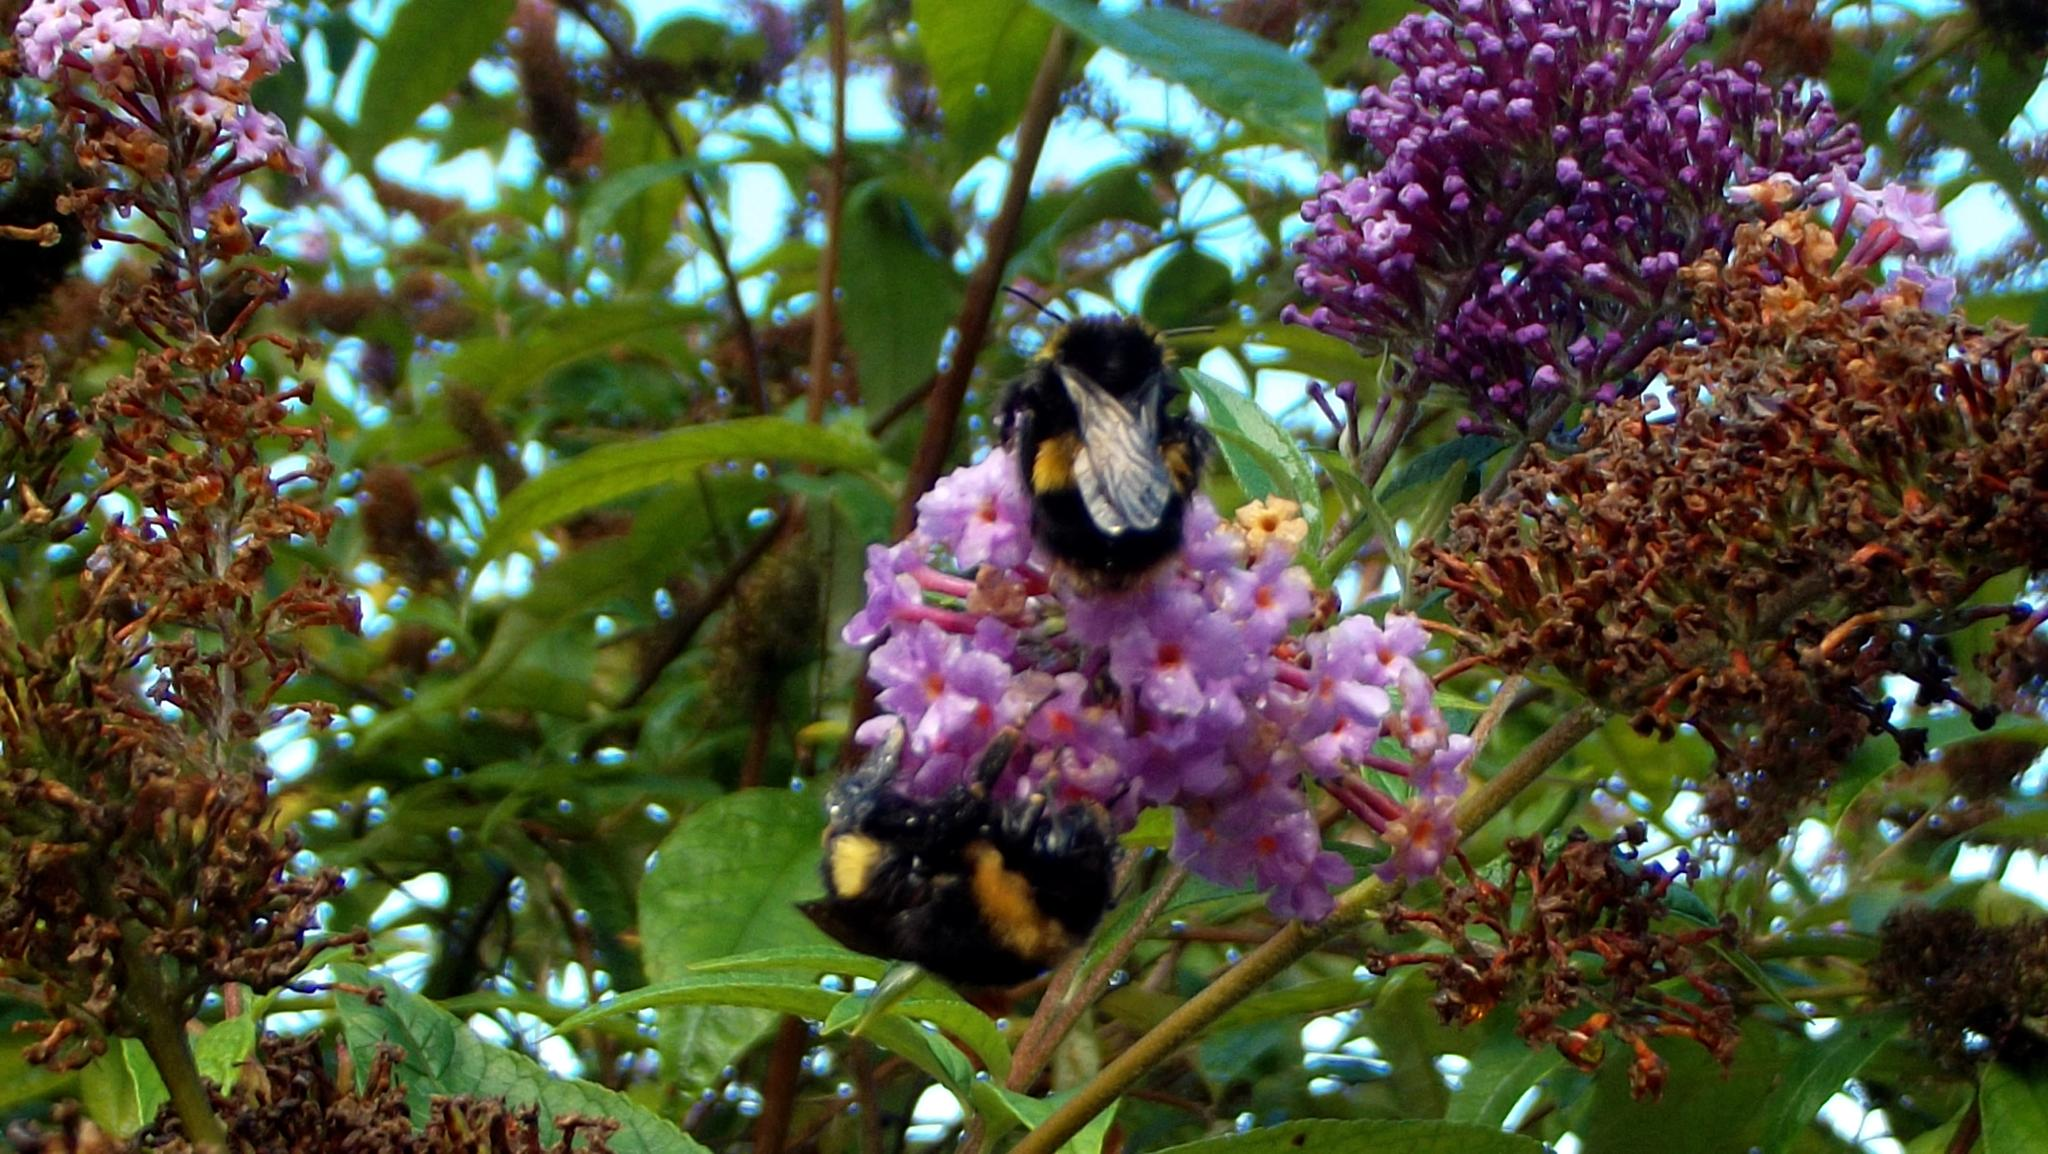 BEES by ksanger1